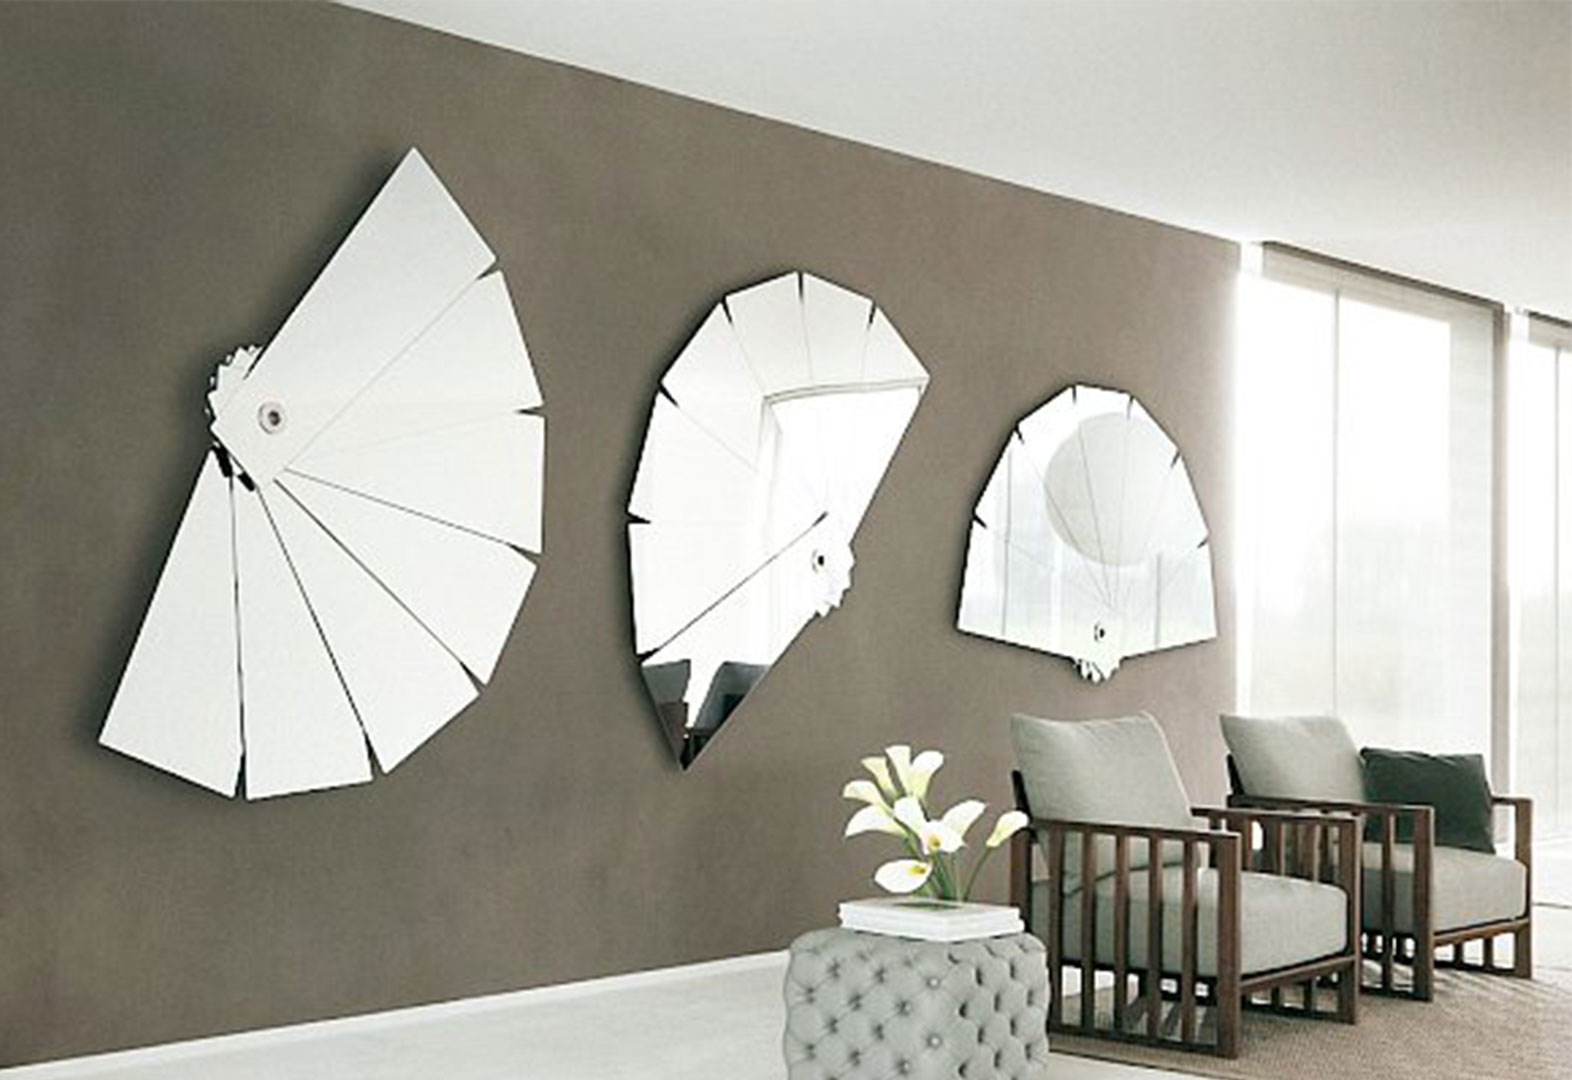 creative interior home decor mirrors image 3 of 10 - Home Decor Mirrors